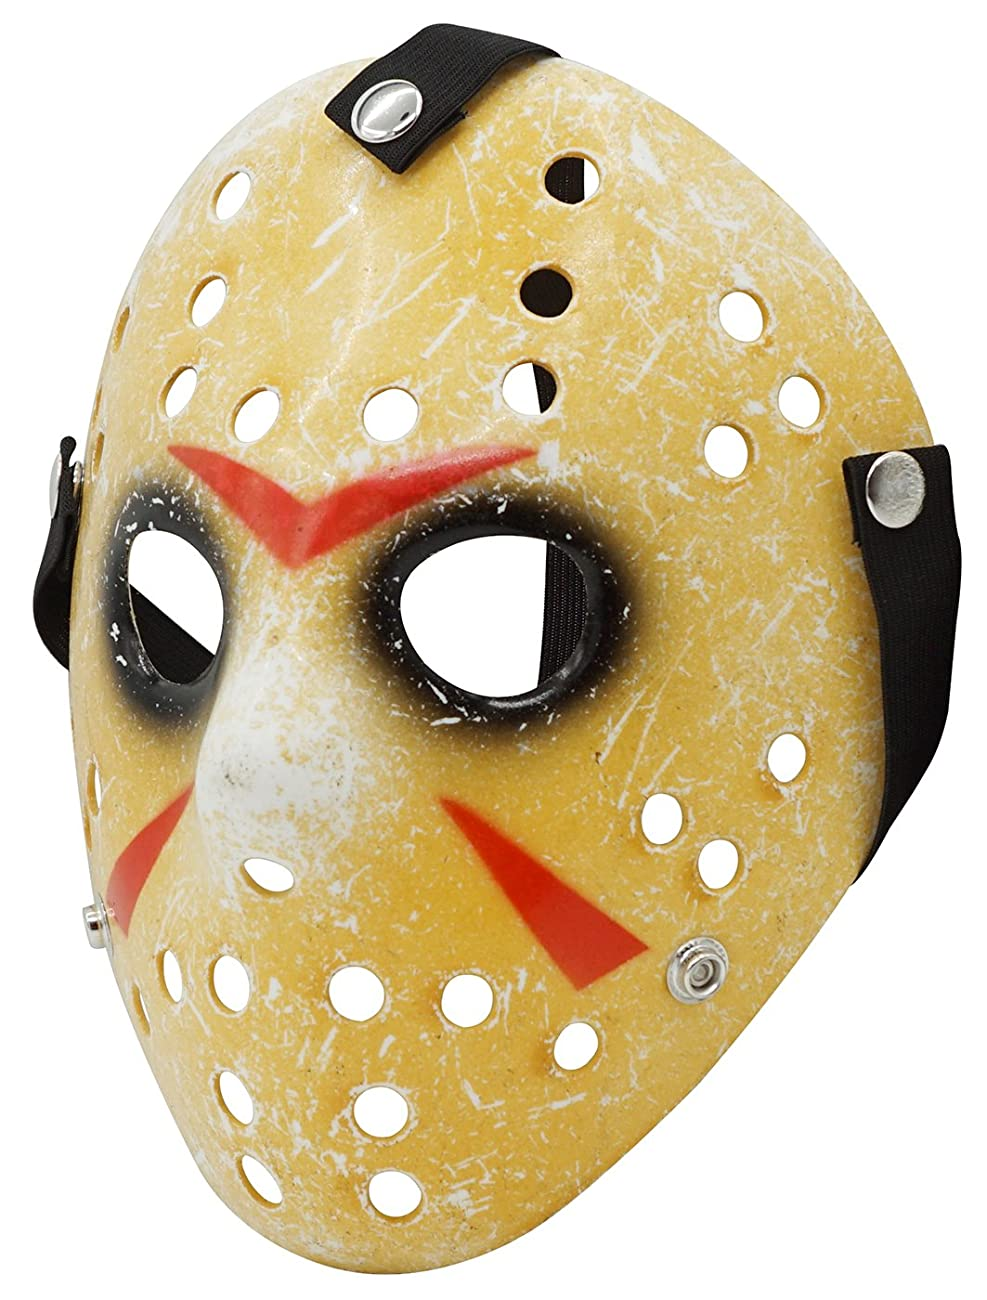 Cosplay costume Mask Halloween Party Cool Mask 1